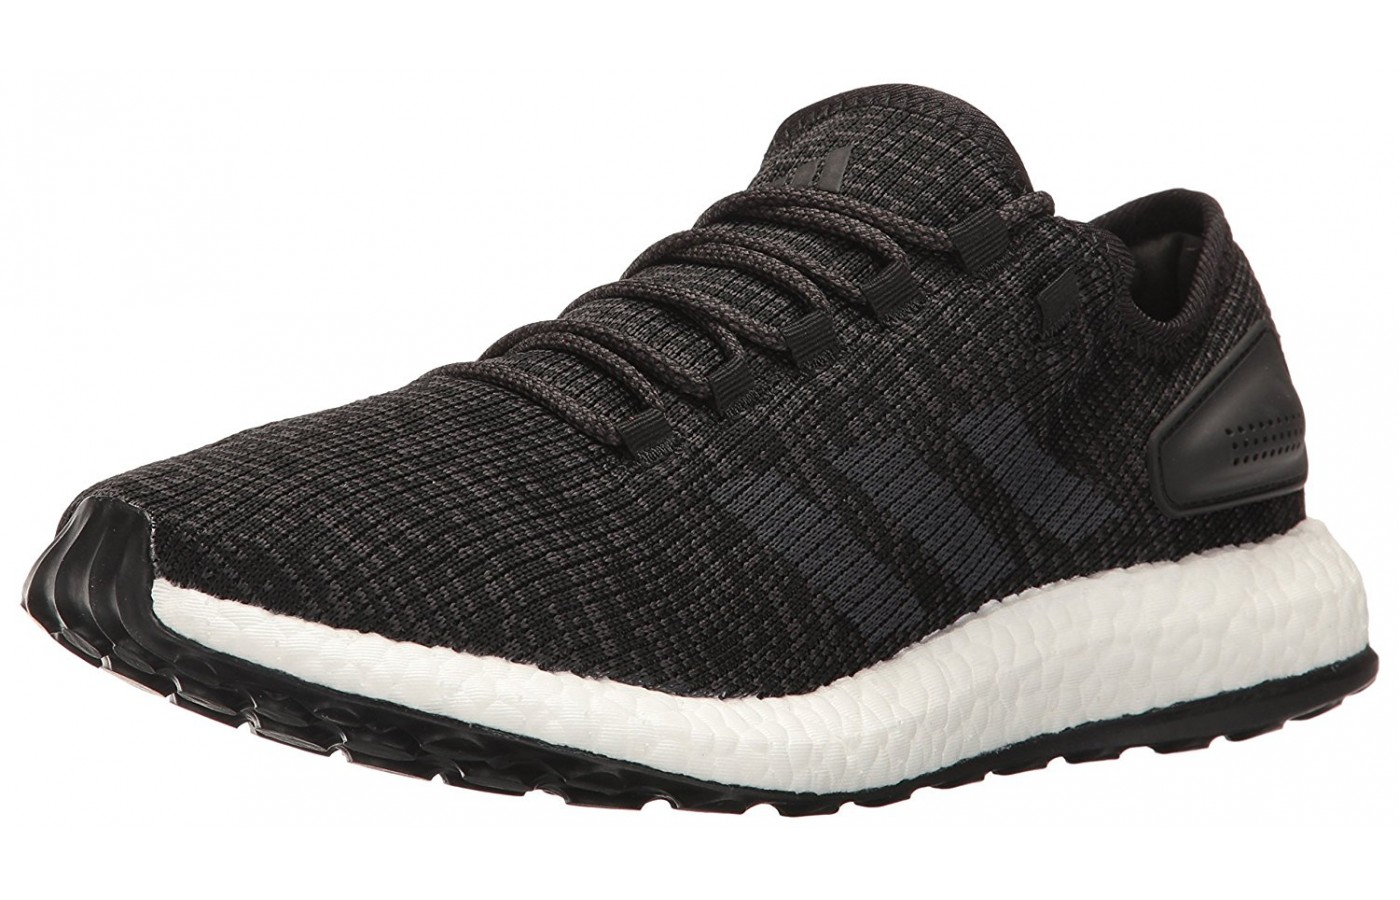 The sleek upper of the Adidas Pure Boost